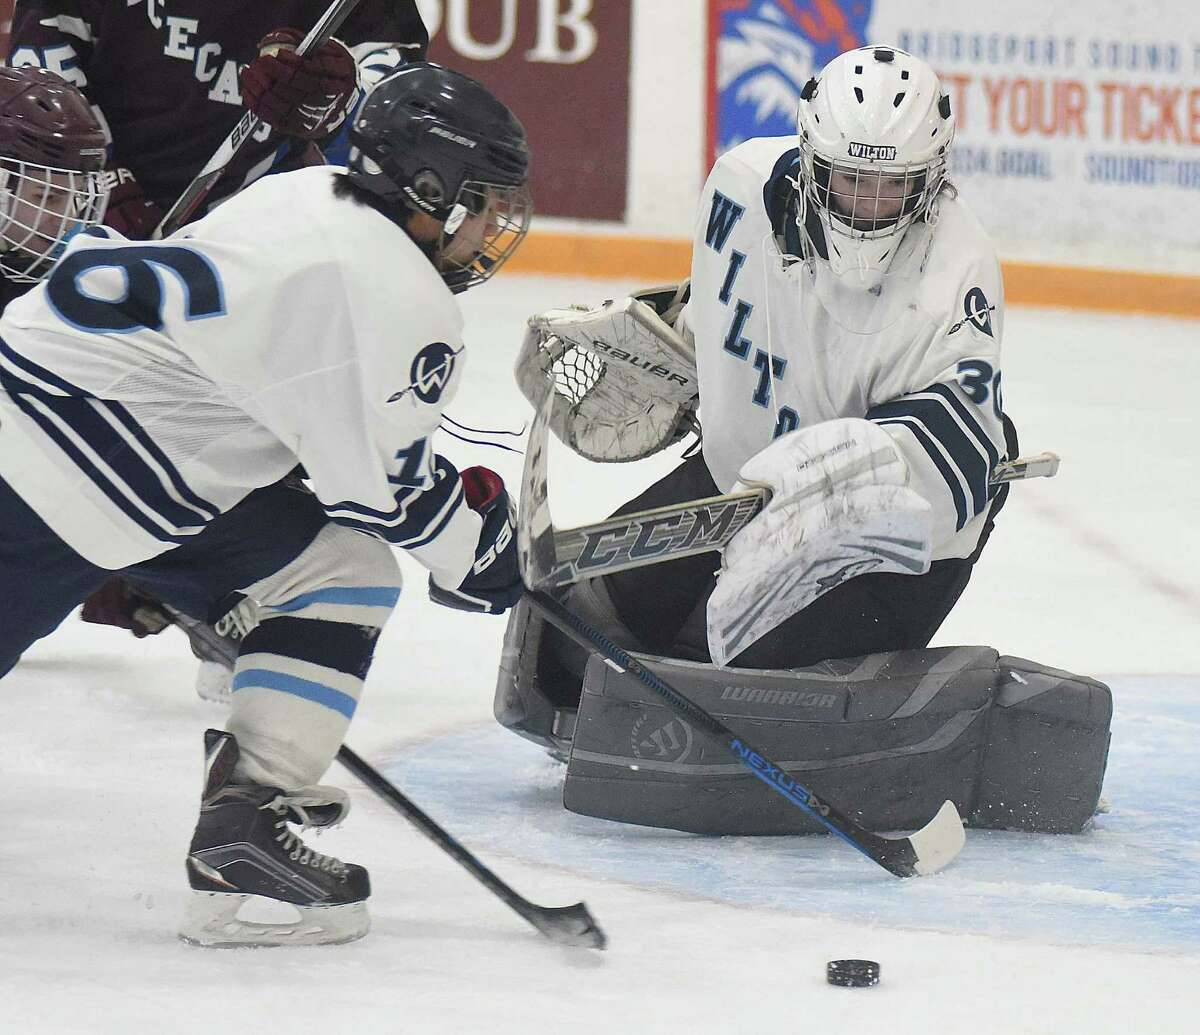 Wilton goalie Christopher Randolph, right, keeps an eye on the puck as his Warriors teammate Kevin Fung moves in to clear the puck during Monday afternoon's game against Bethel-Brookfield-Danbury at the Winter Garden Arena in Ridgefield.